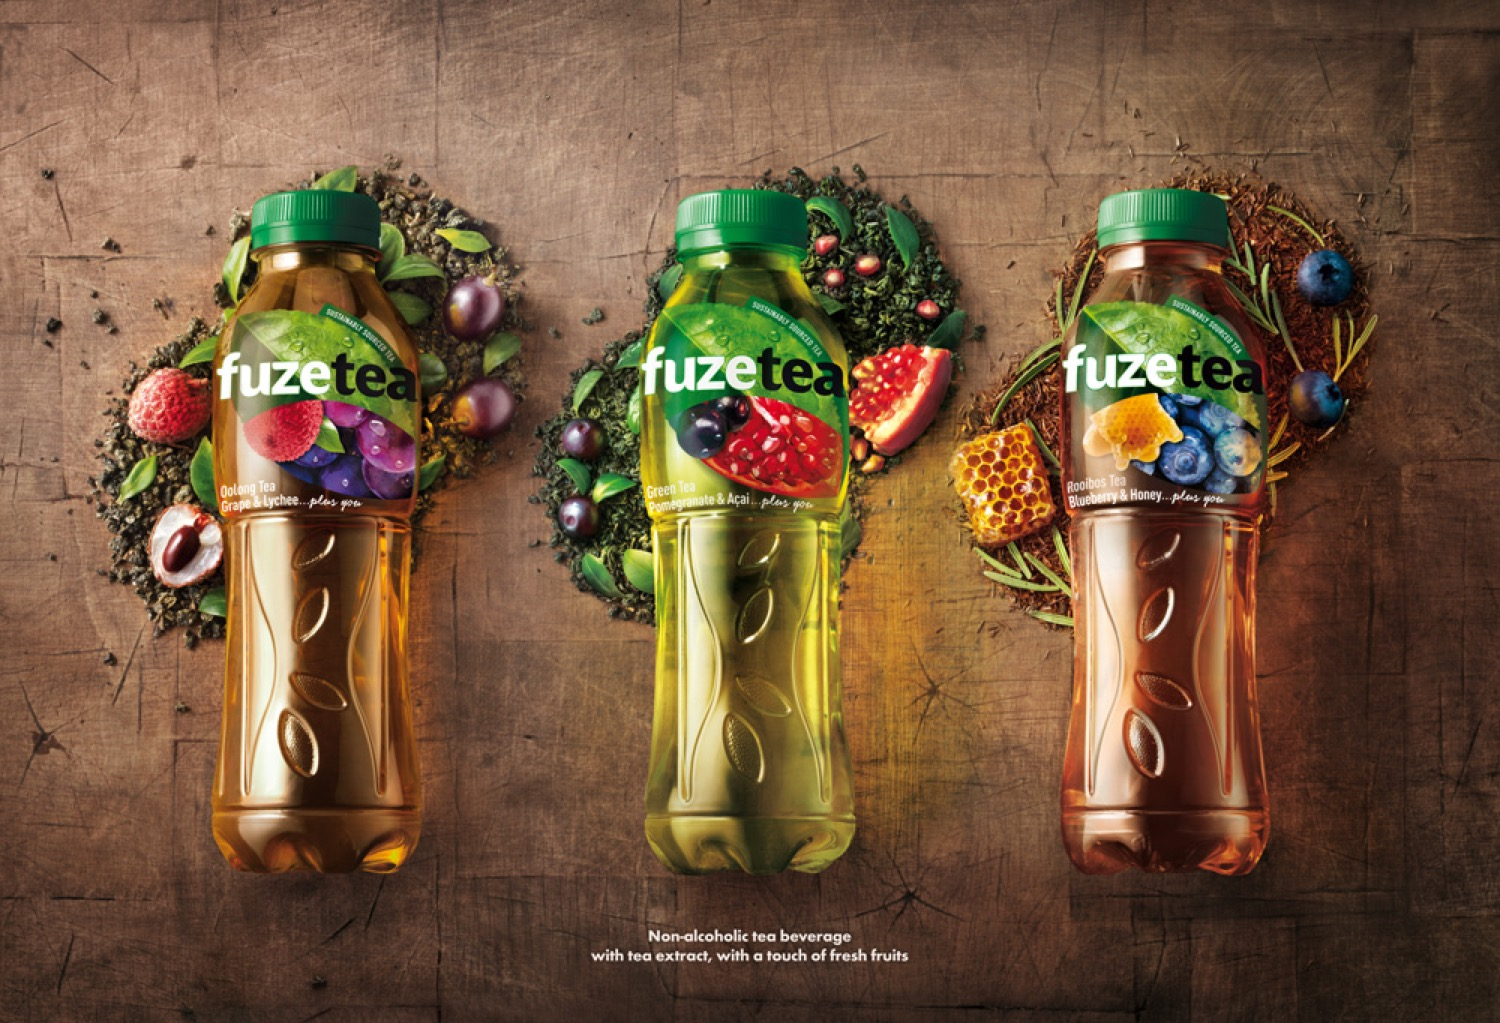 Fuze Tea - Intrinsic Campaign